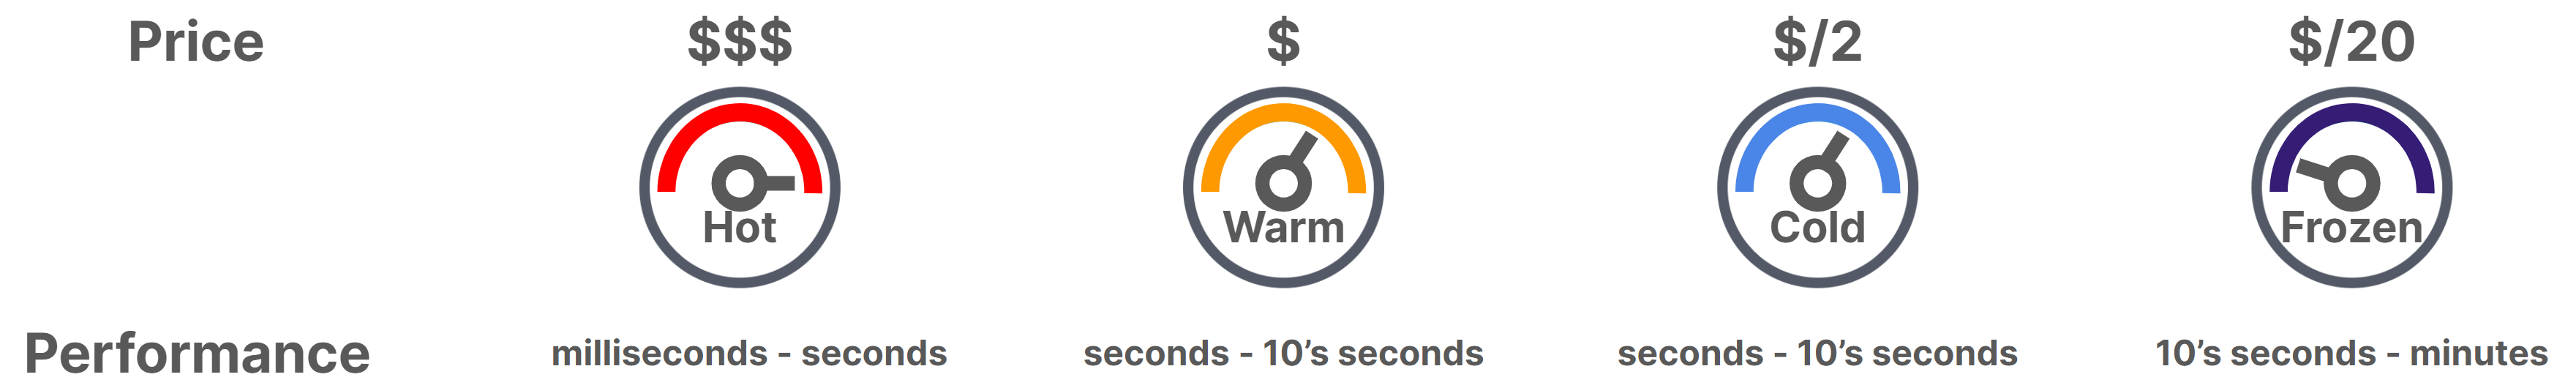 Price_Performance.PNG